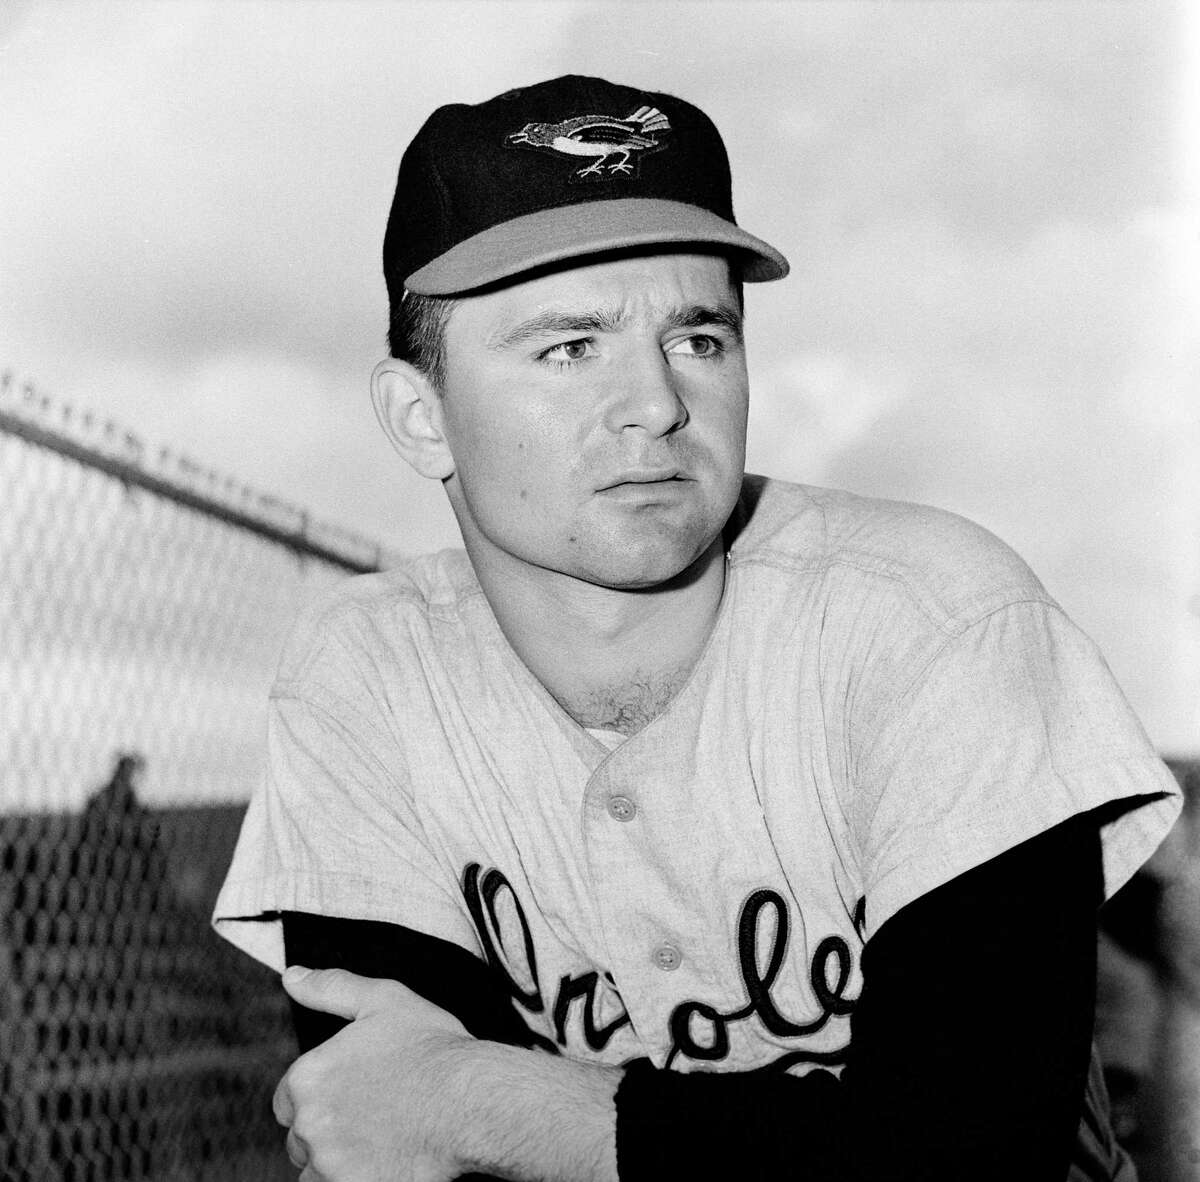 """FILE - This is a 1959 file photo showing Baltimore Orioles minor league pitcher Steve Dalkowski posed in Miami, Fla. Dalkowski, a hard-throwing, wild left-hander who inspired the creation of the character Nuke LaLoosh in the movie """"Bull Durham"""" but never pitched in a big league game, died April 19, 2020, at the Hospital of Central Connecticut in New Britain. He was 80. His sister, Patricia Cain, said Friday, April 24, 2020, he had several pre-existing conditions that were complicated when he became infected with the novel coronavirus. (AP Photo/File)"""